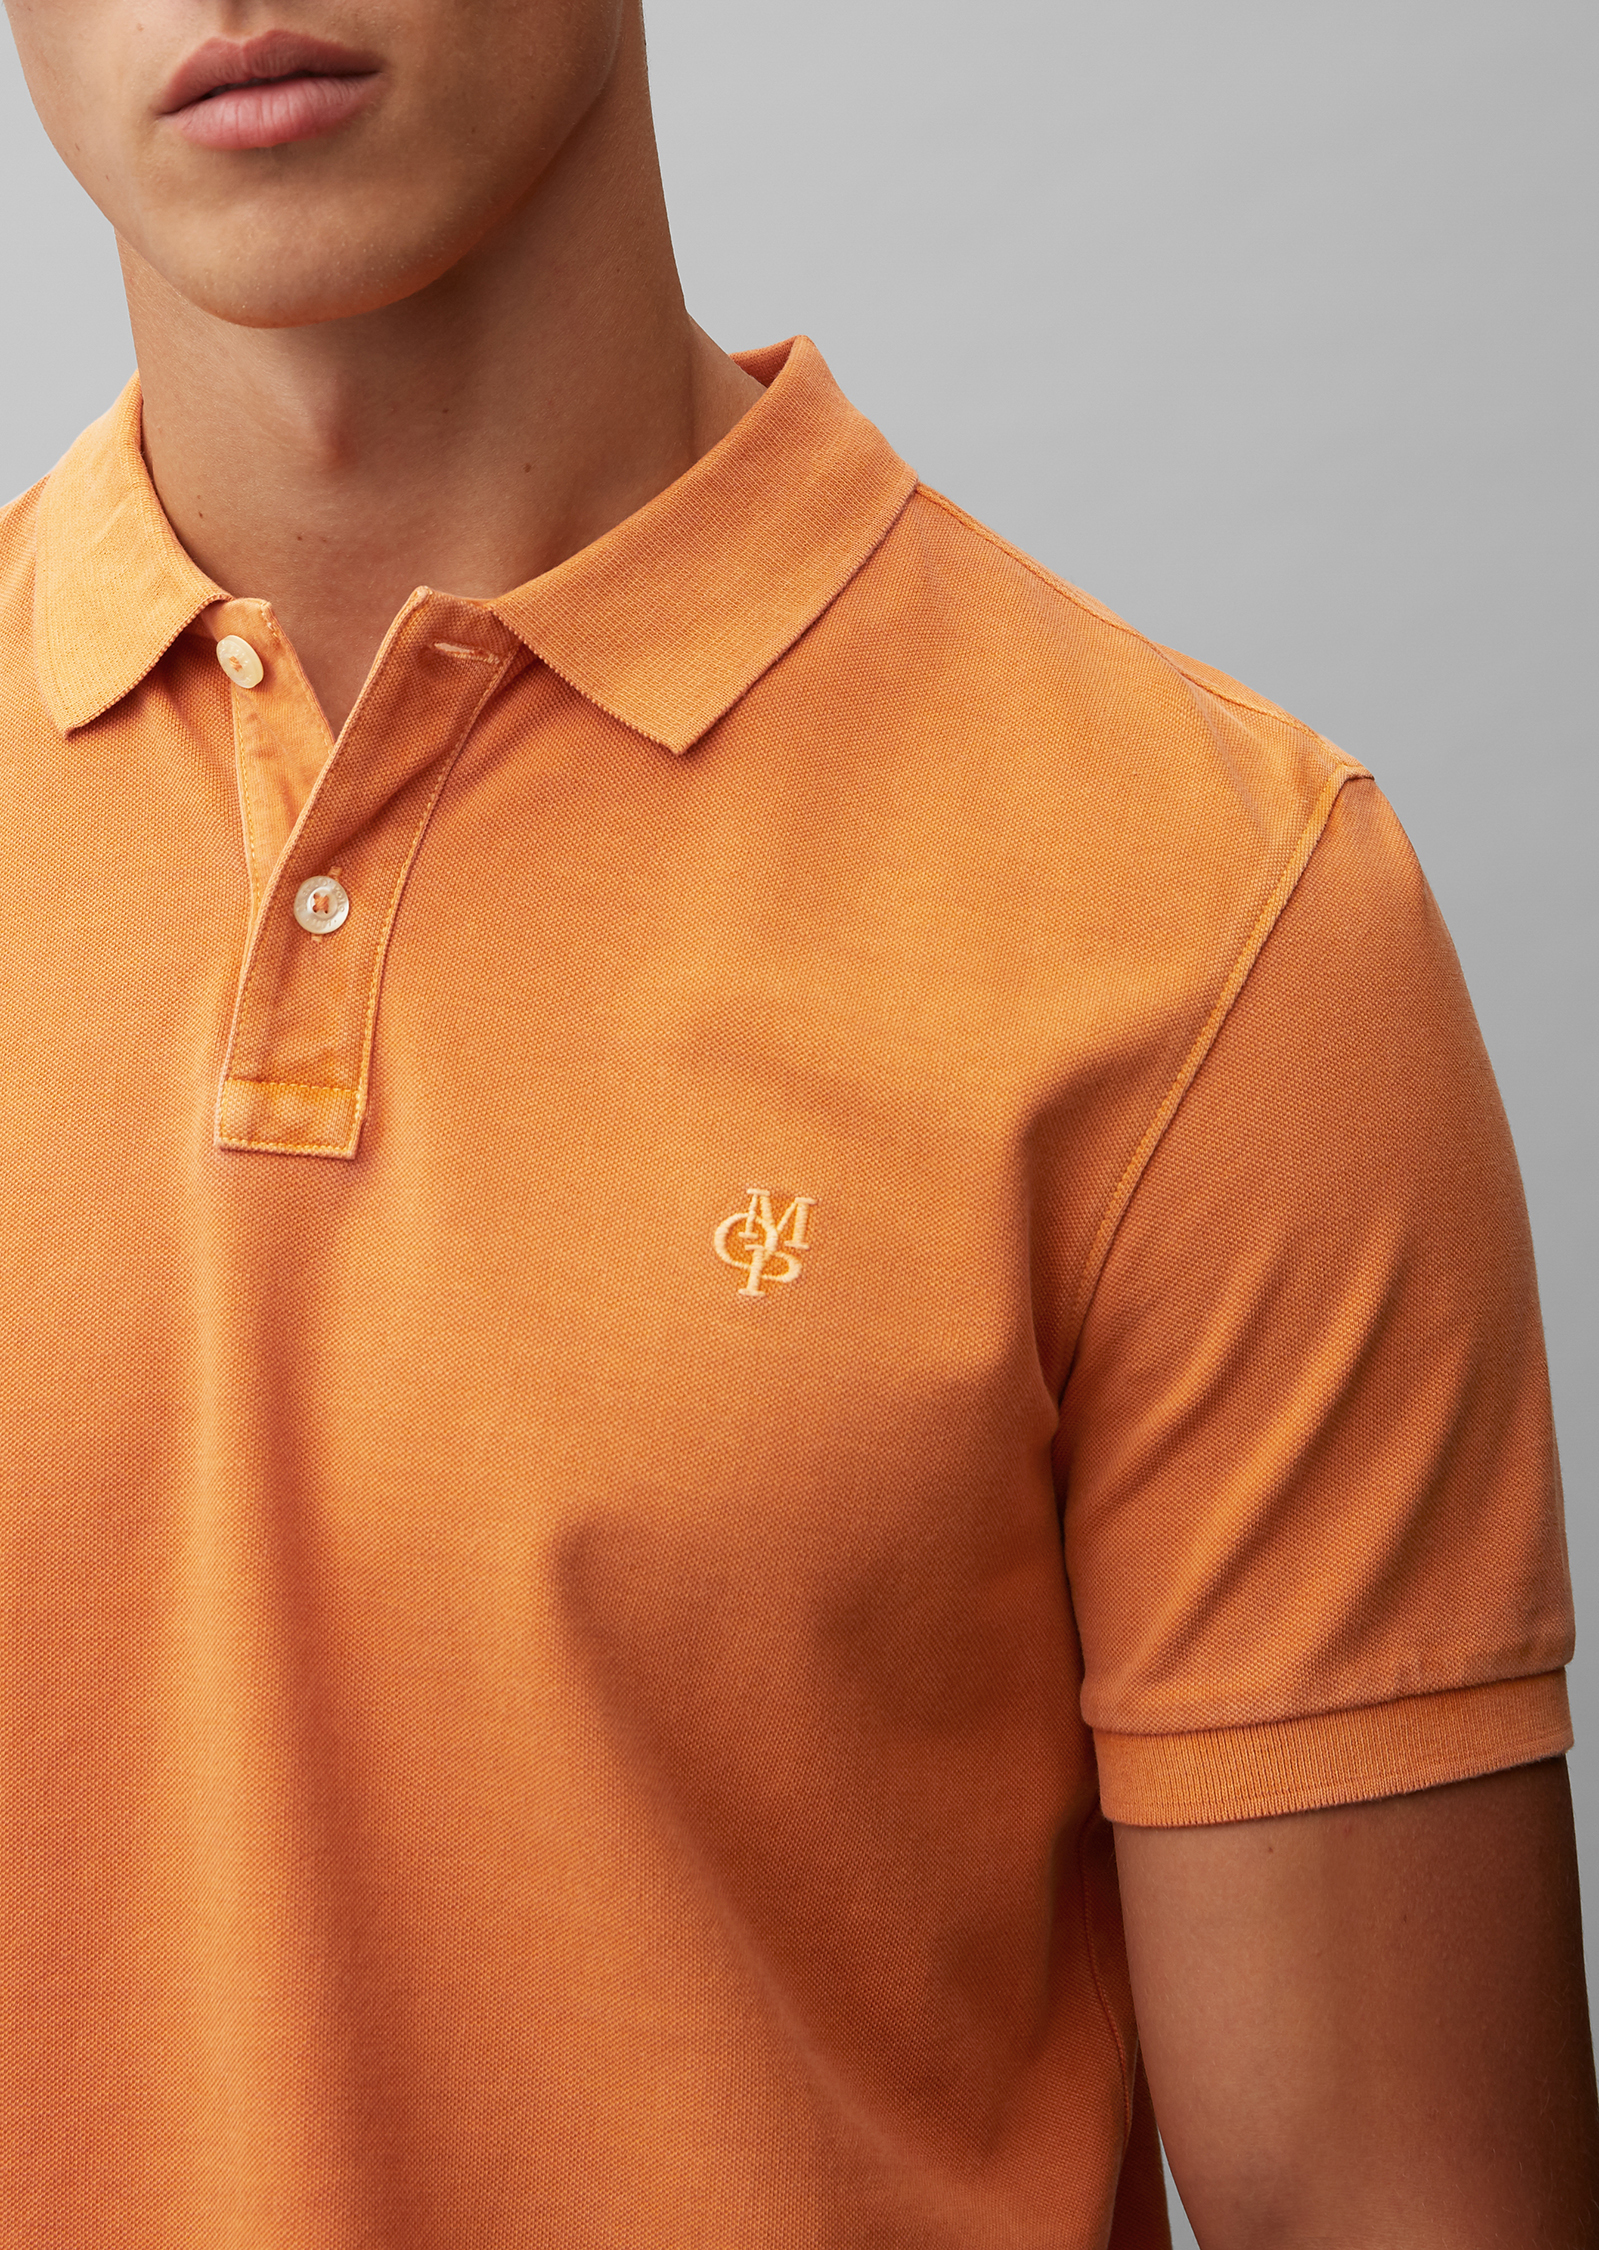 Marc O'Polo Shirt in Sinaasappel IZkOxLms